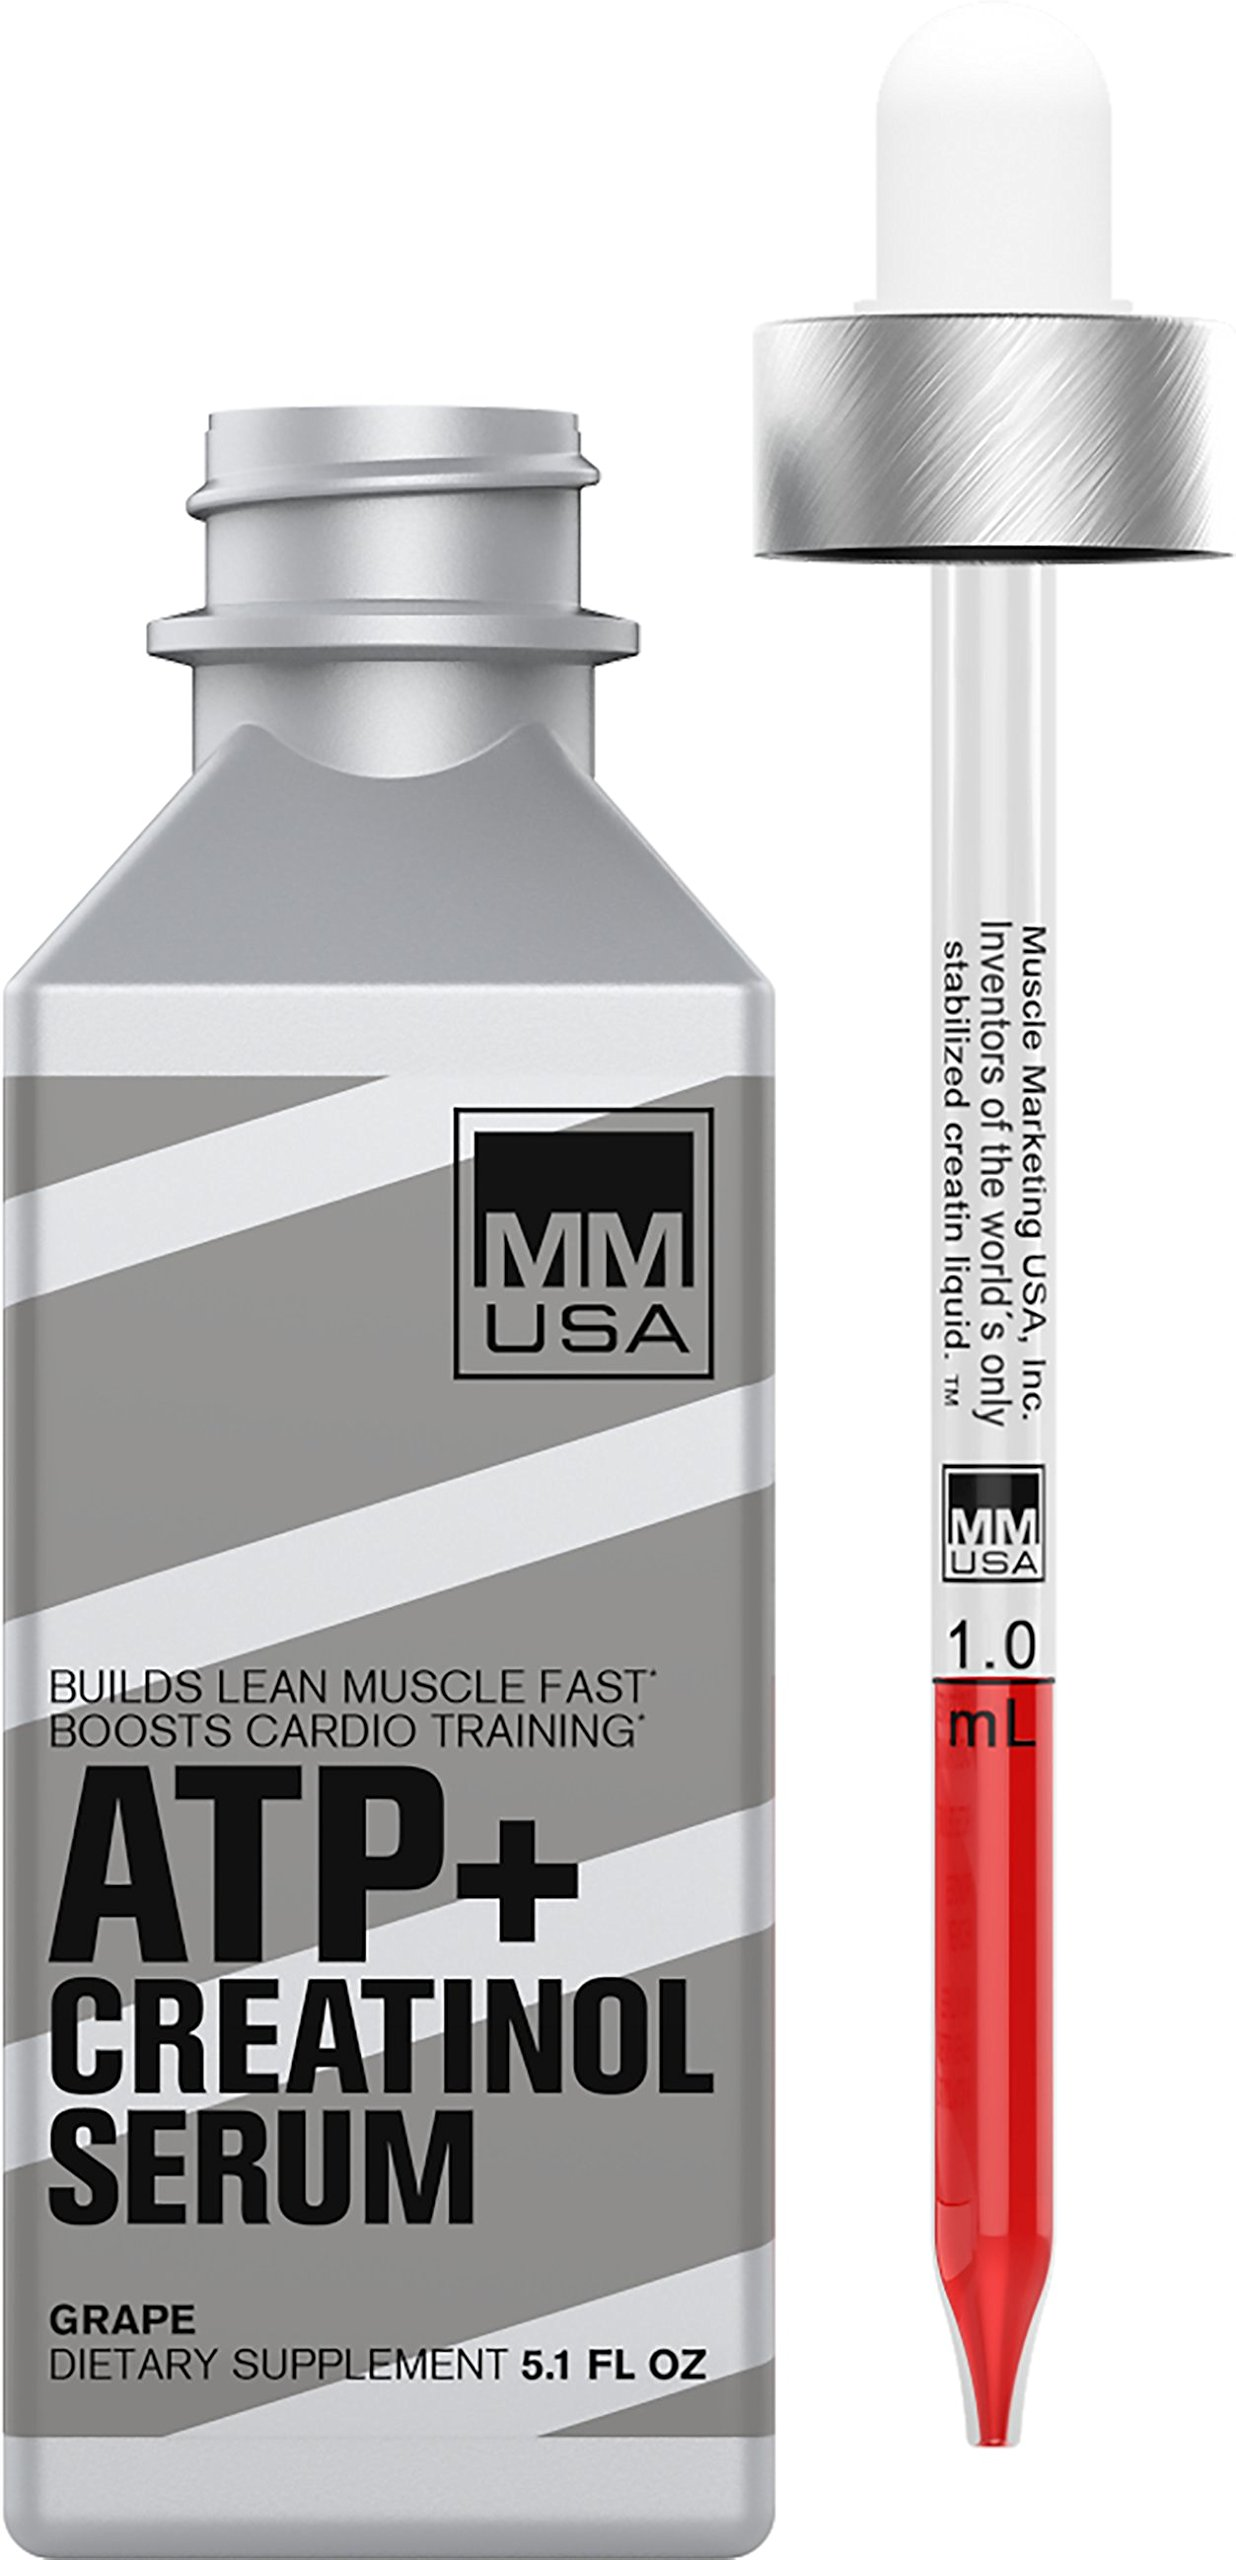 ATP (Adenosine Triphosphate) Creatinol Serum by MMUSA, Pre Workout for Energy + Strength, Joint Protection, Stamina and Builds Lean Muscle Mass. Glucosamine Sulfate. Anti inflammatory. Strawberry